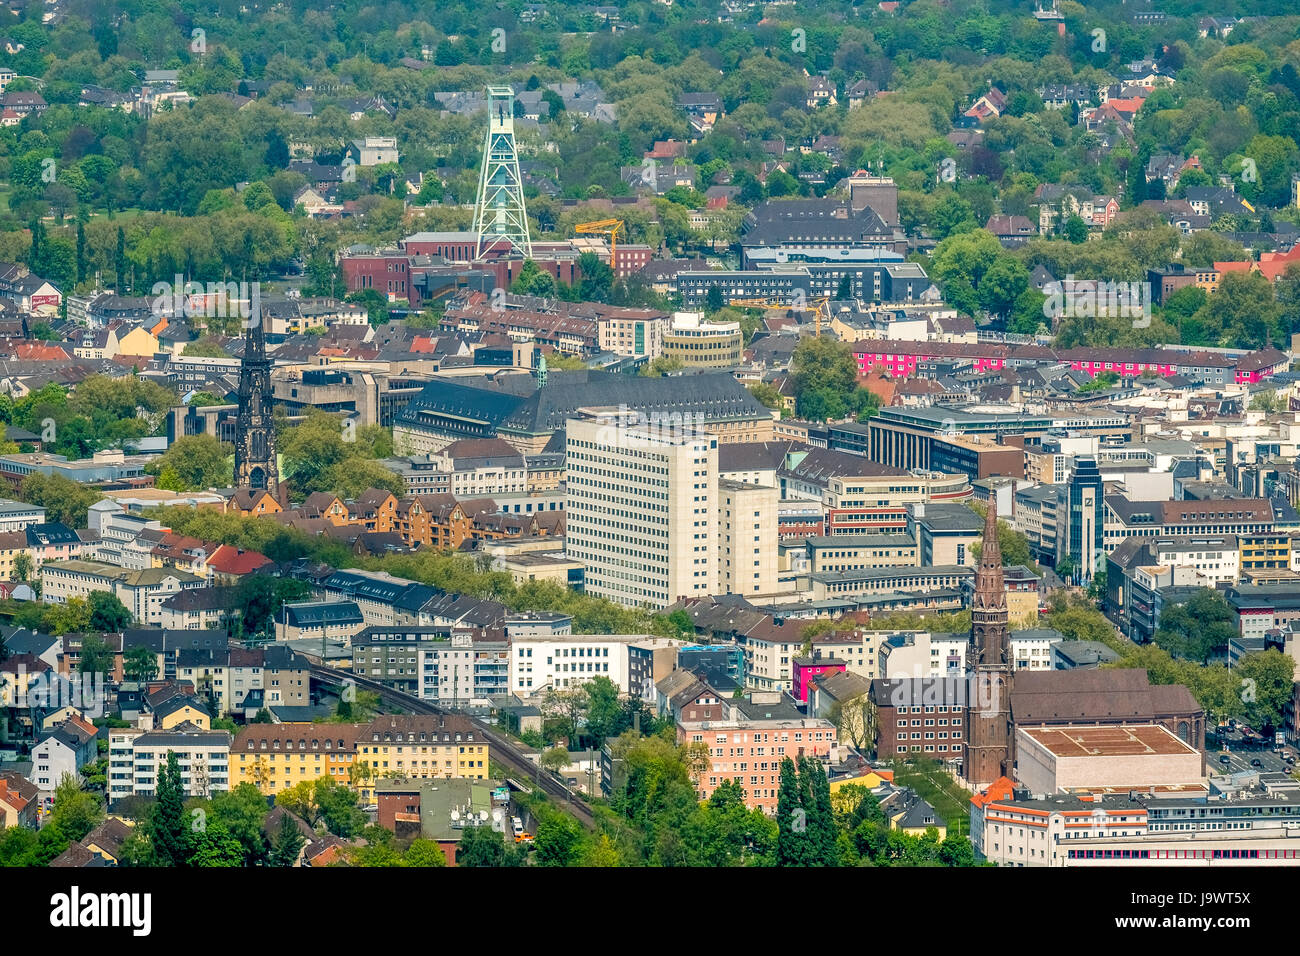 Old justice district and mining museum with winding tower, Bochum, Ruhr area, North Rhine-Westphalia, Germany - Stock Image